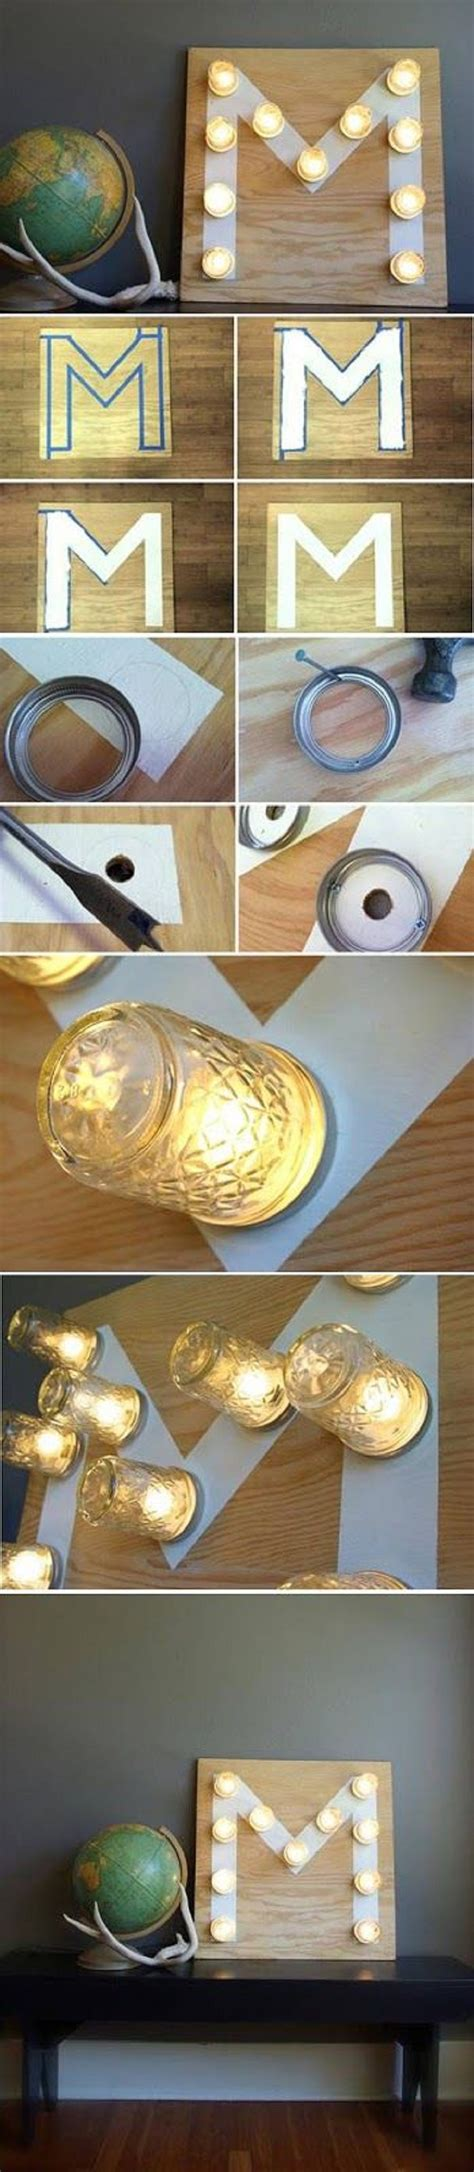 diy tutorials home decor 10 simply breathtaking diy home decor projects that will